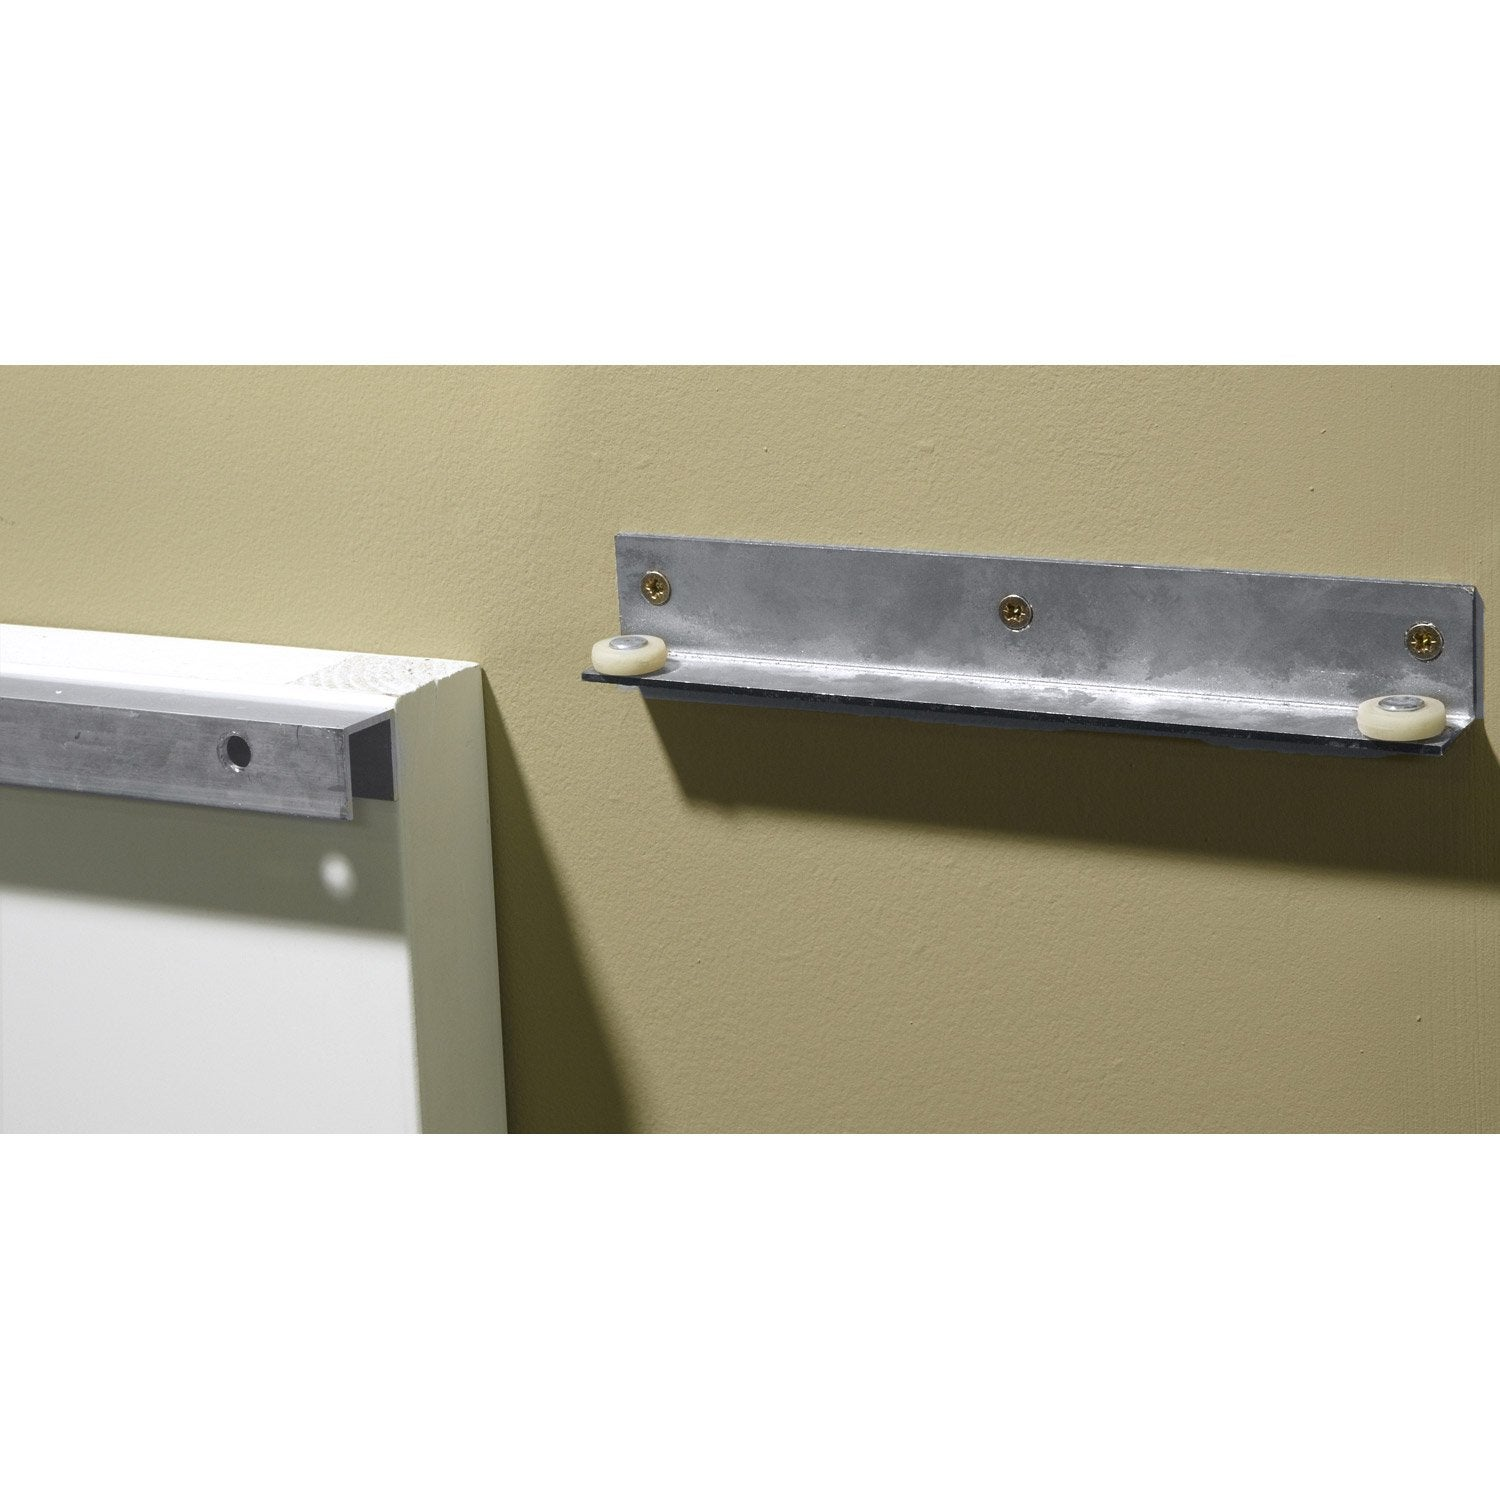 Rail coulissant secret artens pour porte de largeur 113 cm leroy merlin - Leroy merlin rail coulissant ...